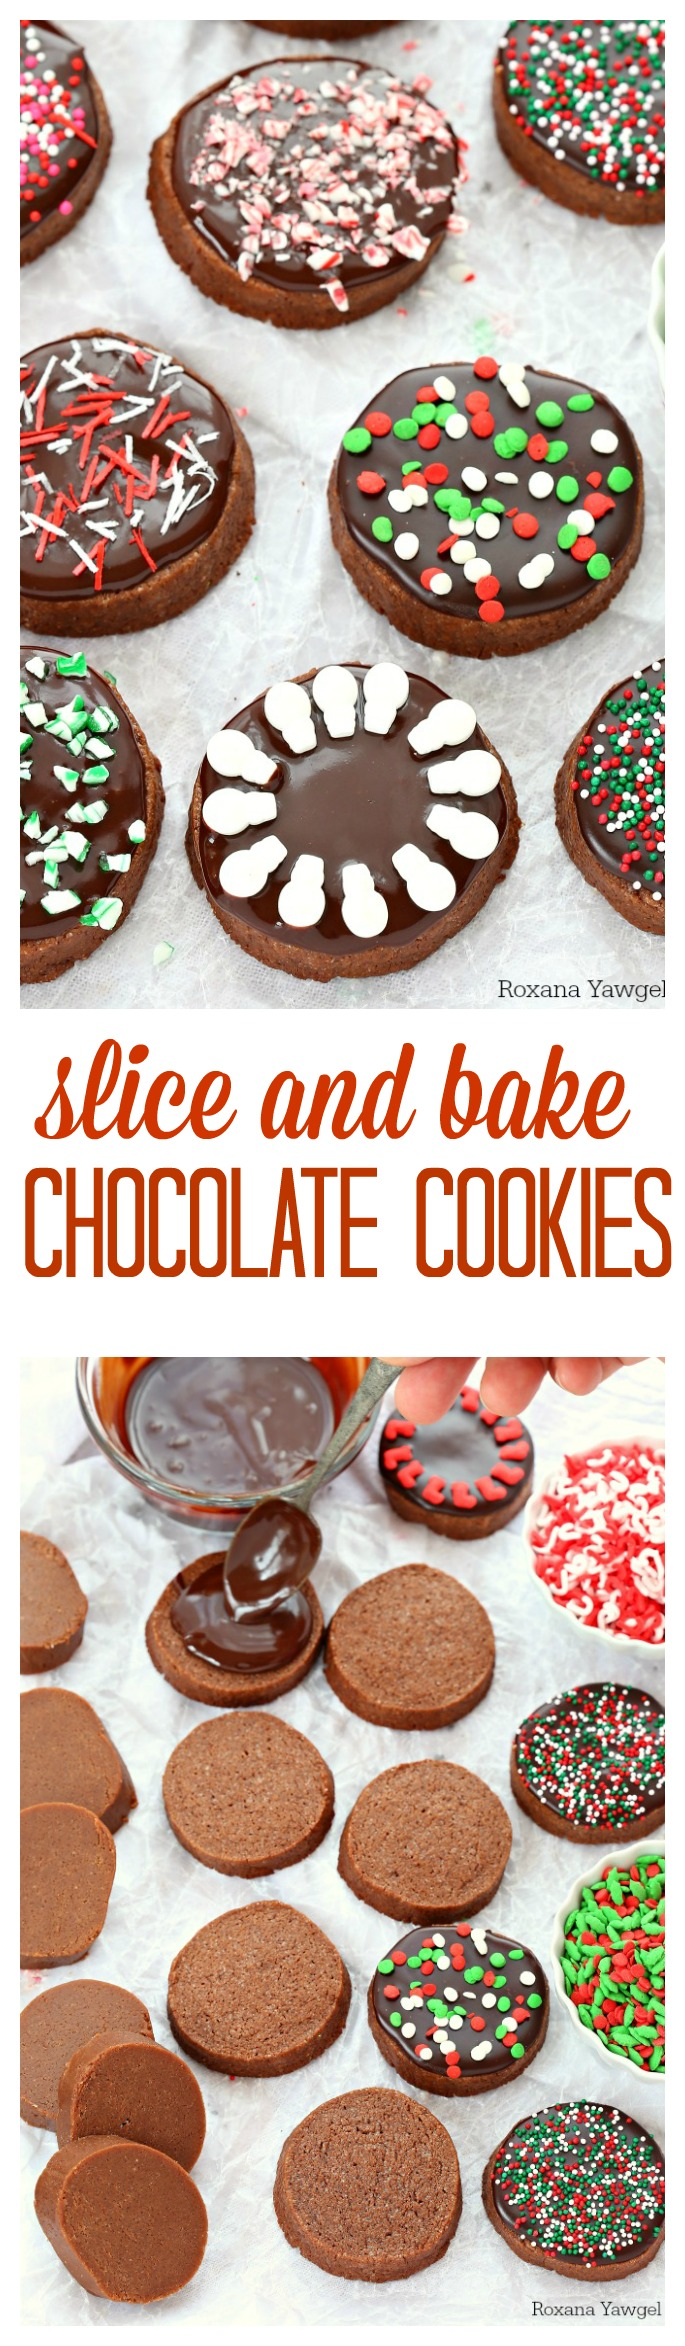 Quick and easy to make, these slice and bake chocolate cookies are packed with vanilla, butter and chocolate flavor. Top with a silky ganache for an irresistible holiday cookie!